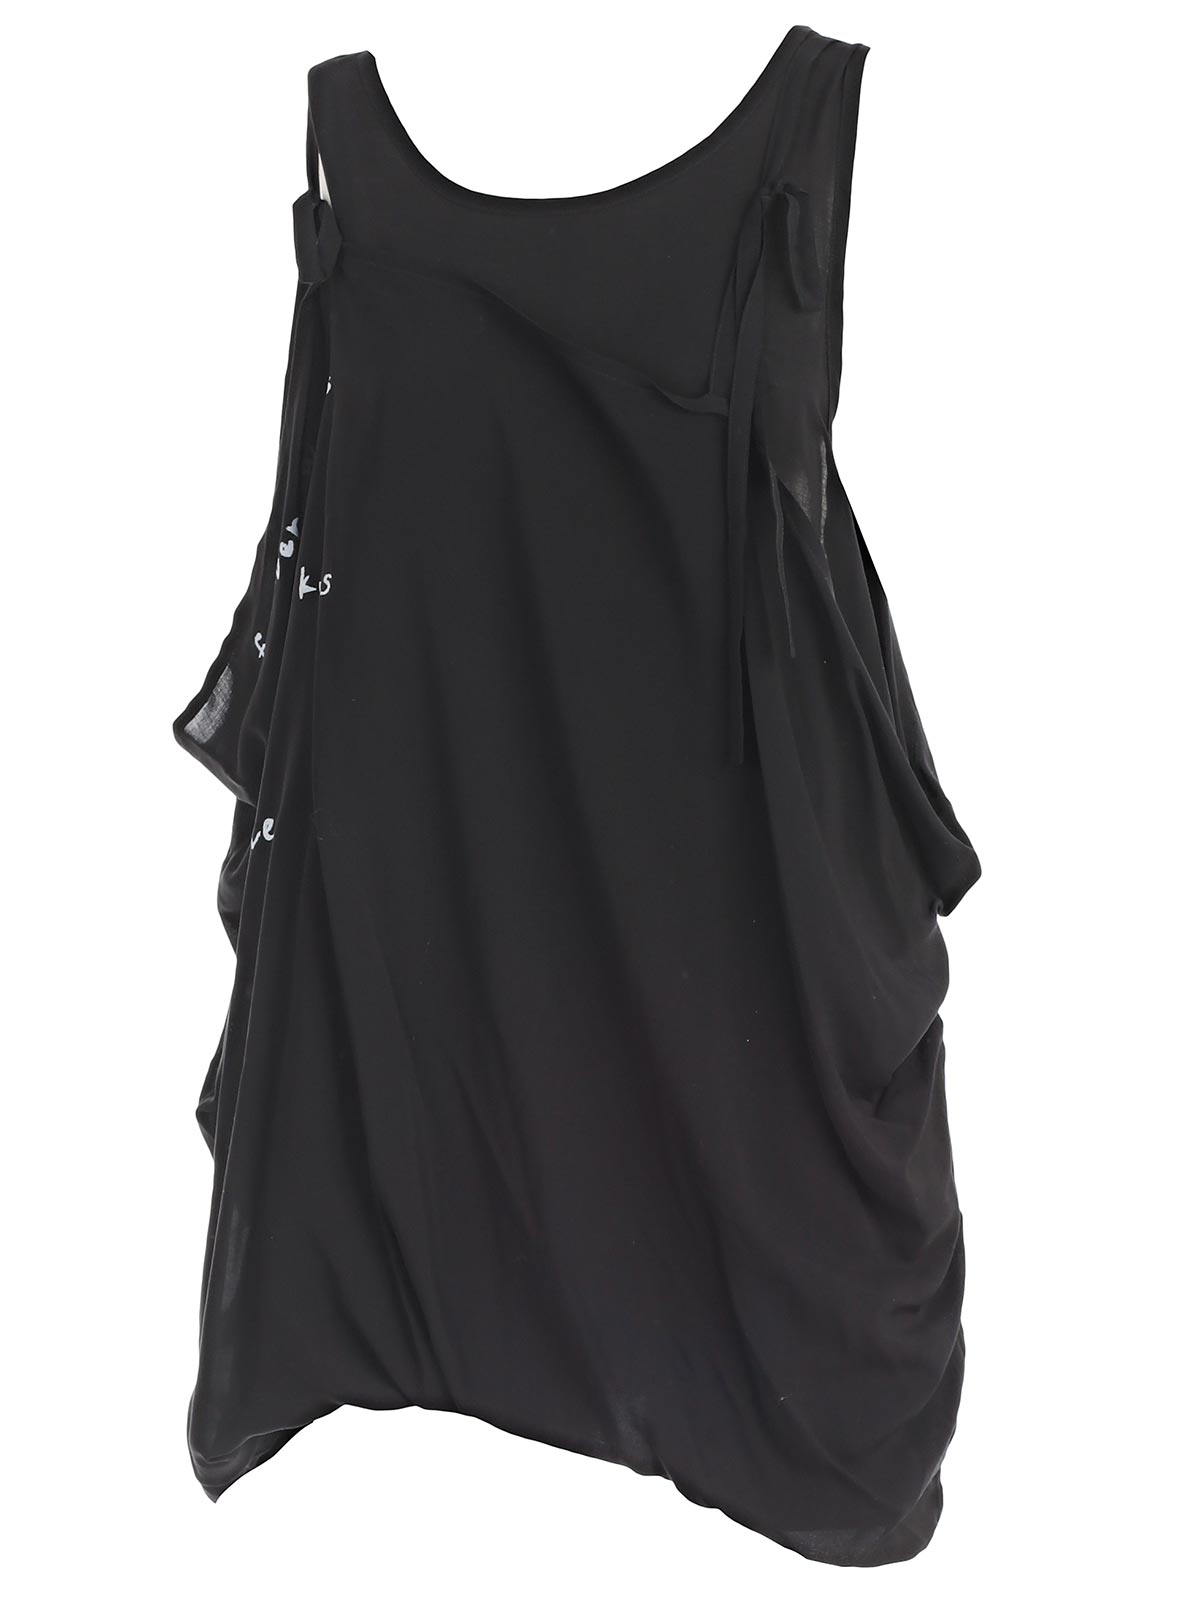 Picture of Ann Demeulemester Dress